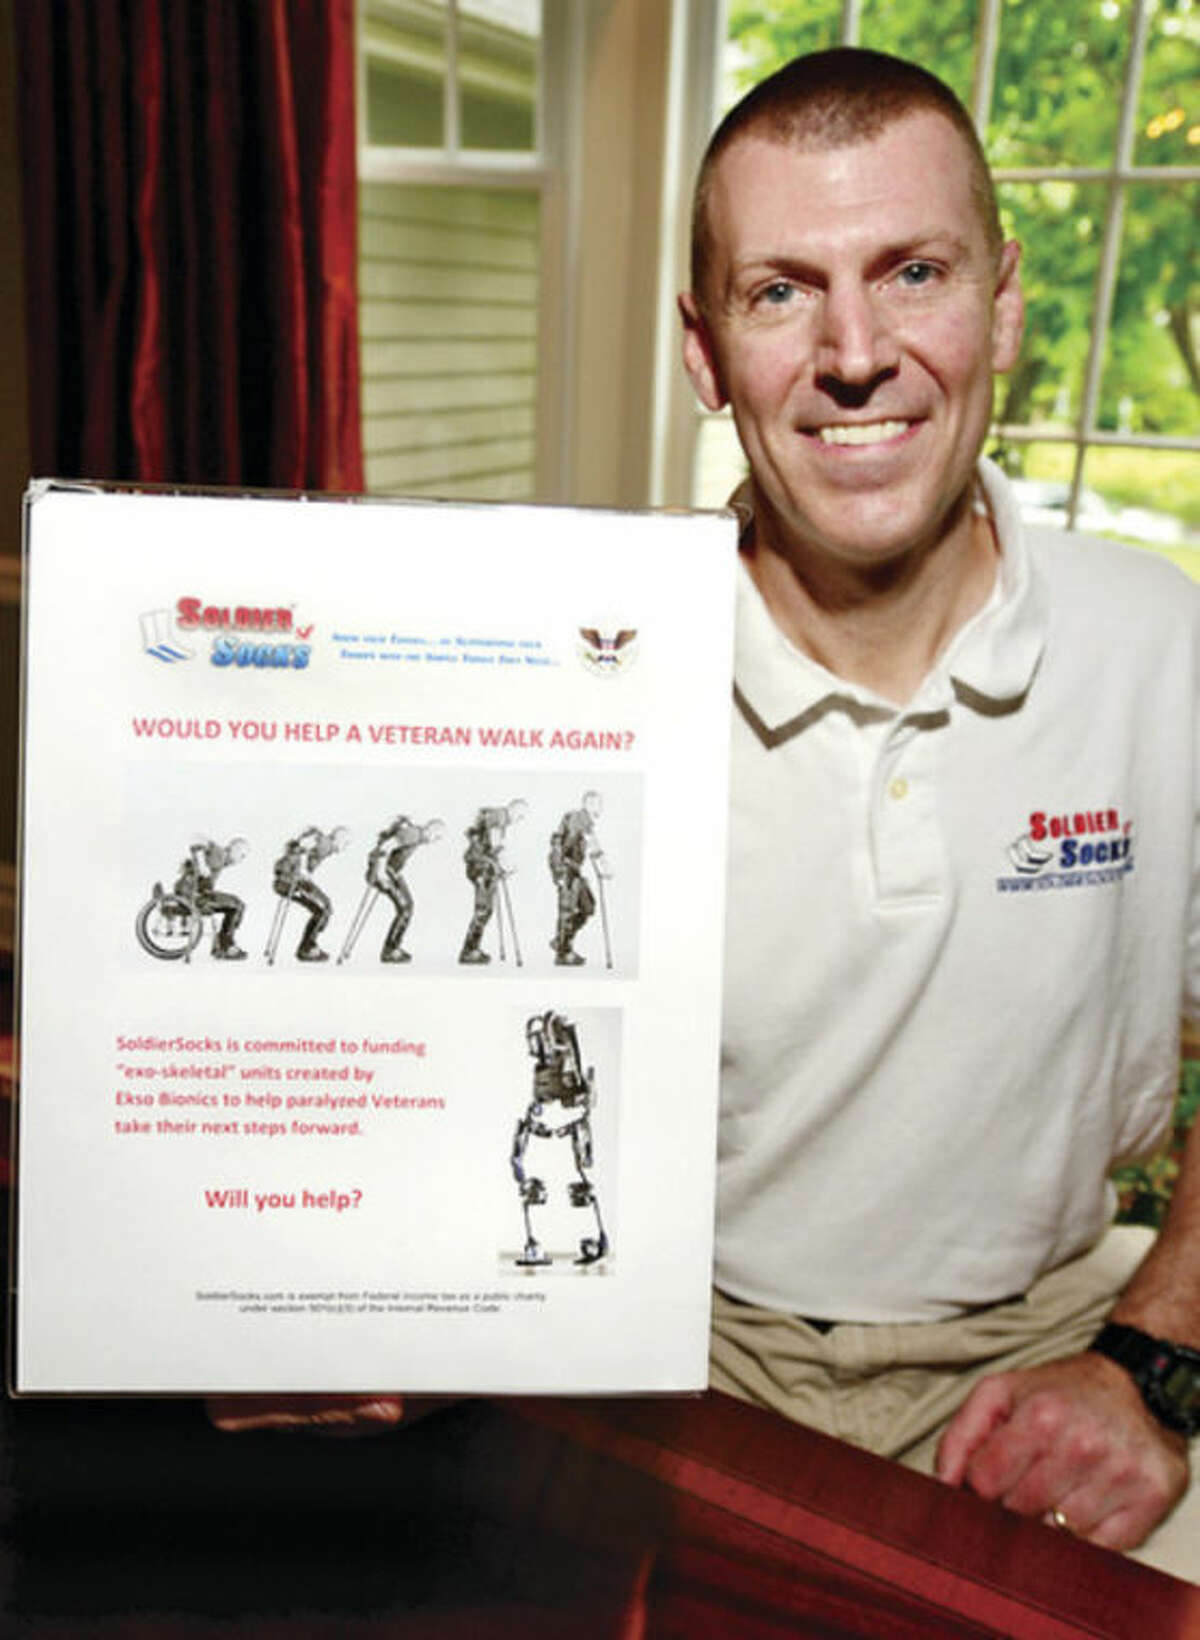 Hour photo / Erik Trautmann Stamford resident Chris Meek, founder of the Soldier Socks program, has created a fundraiser for veterans who can no longer walk and is helping to provide a tool to help them walk again.